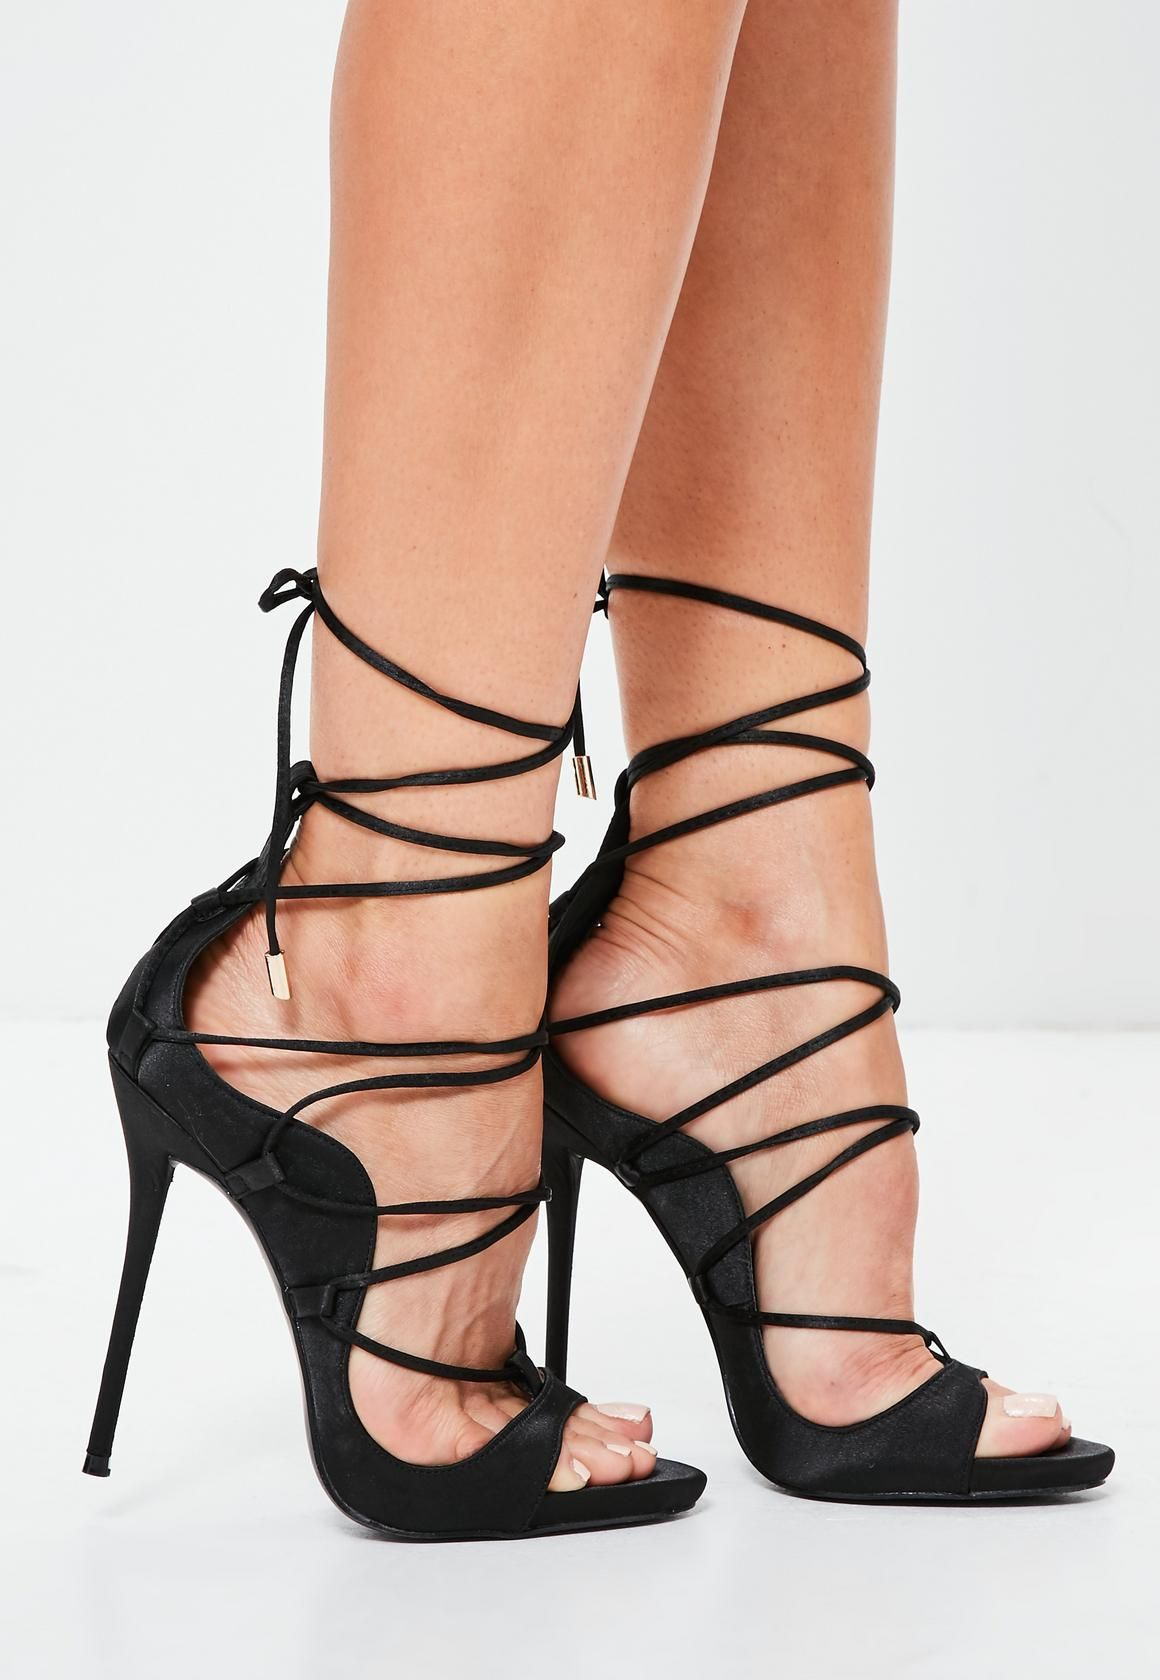 759fa3e63 Missguided - Black Satin Gladiator Sandals